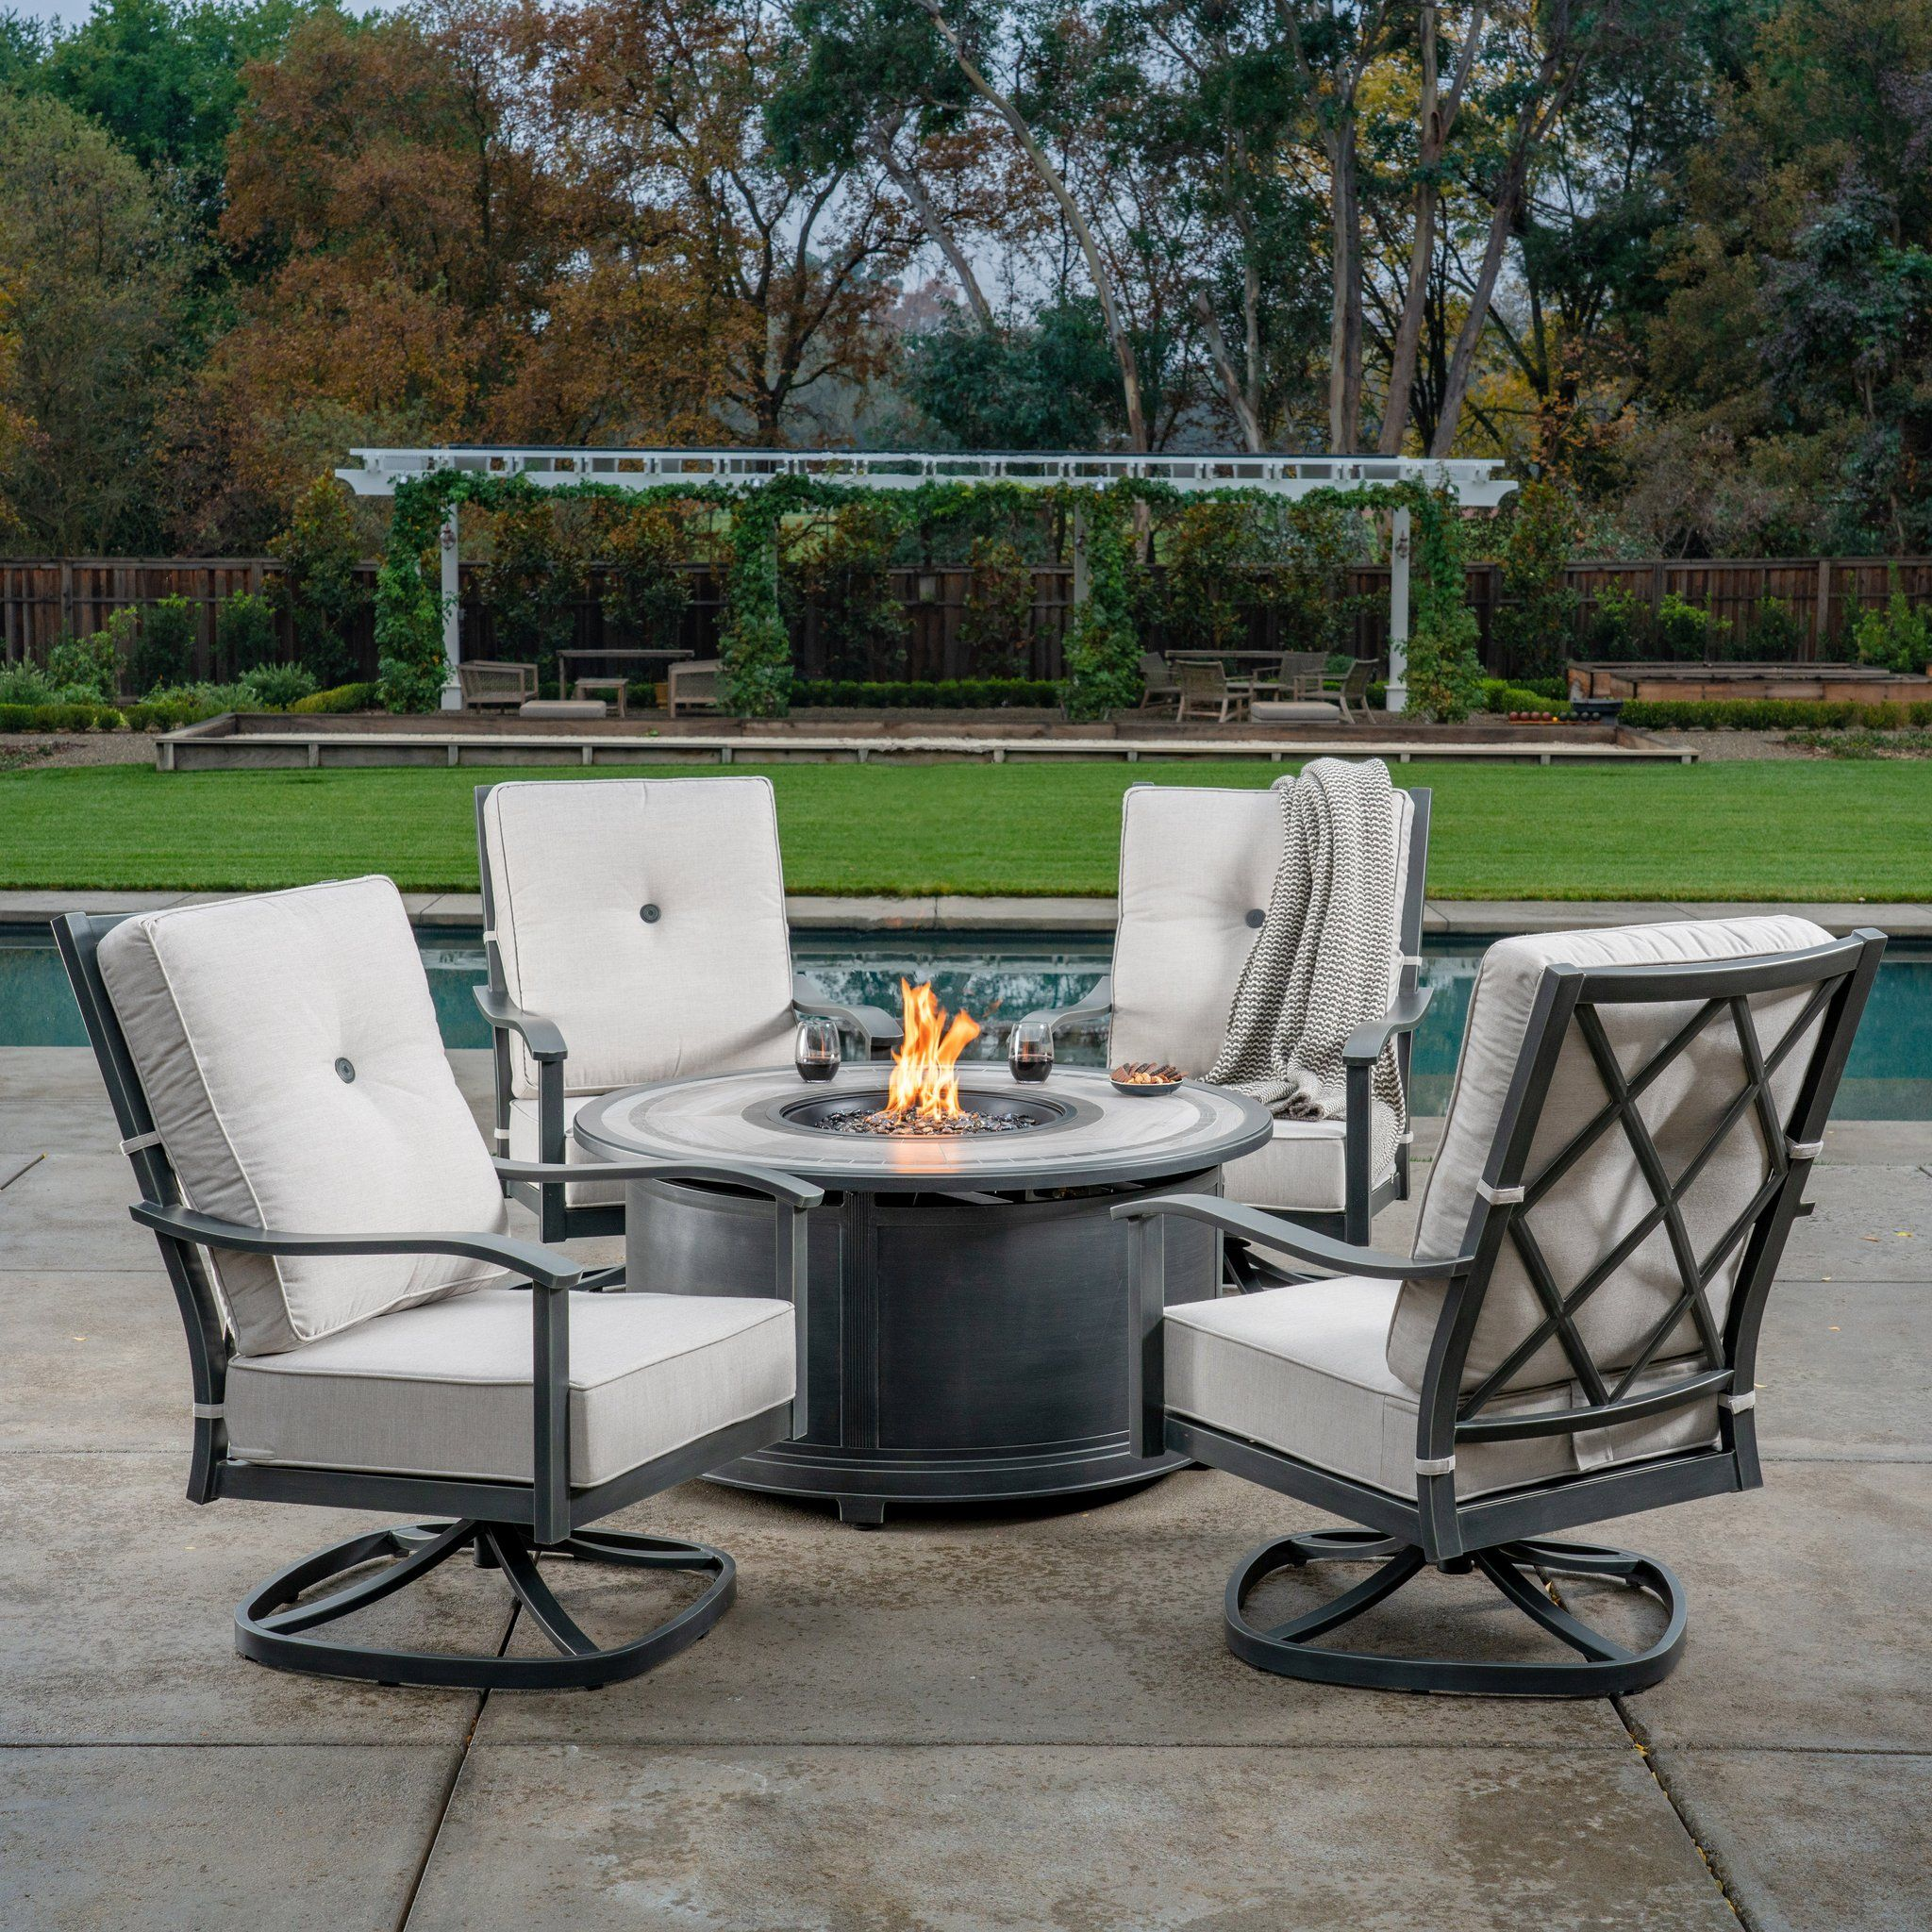 With Classic Clean Lines Ultra High Backs And Premium Tile Top Tables The Carnegie Collect Outdoor Furniture Sets Outdoor Living Areas Outdoor Living Space